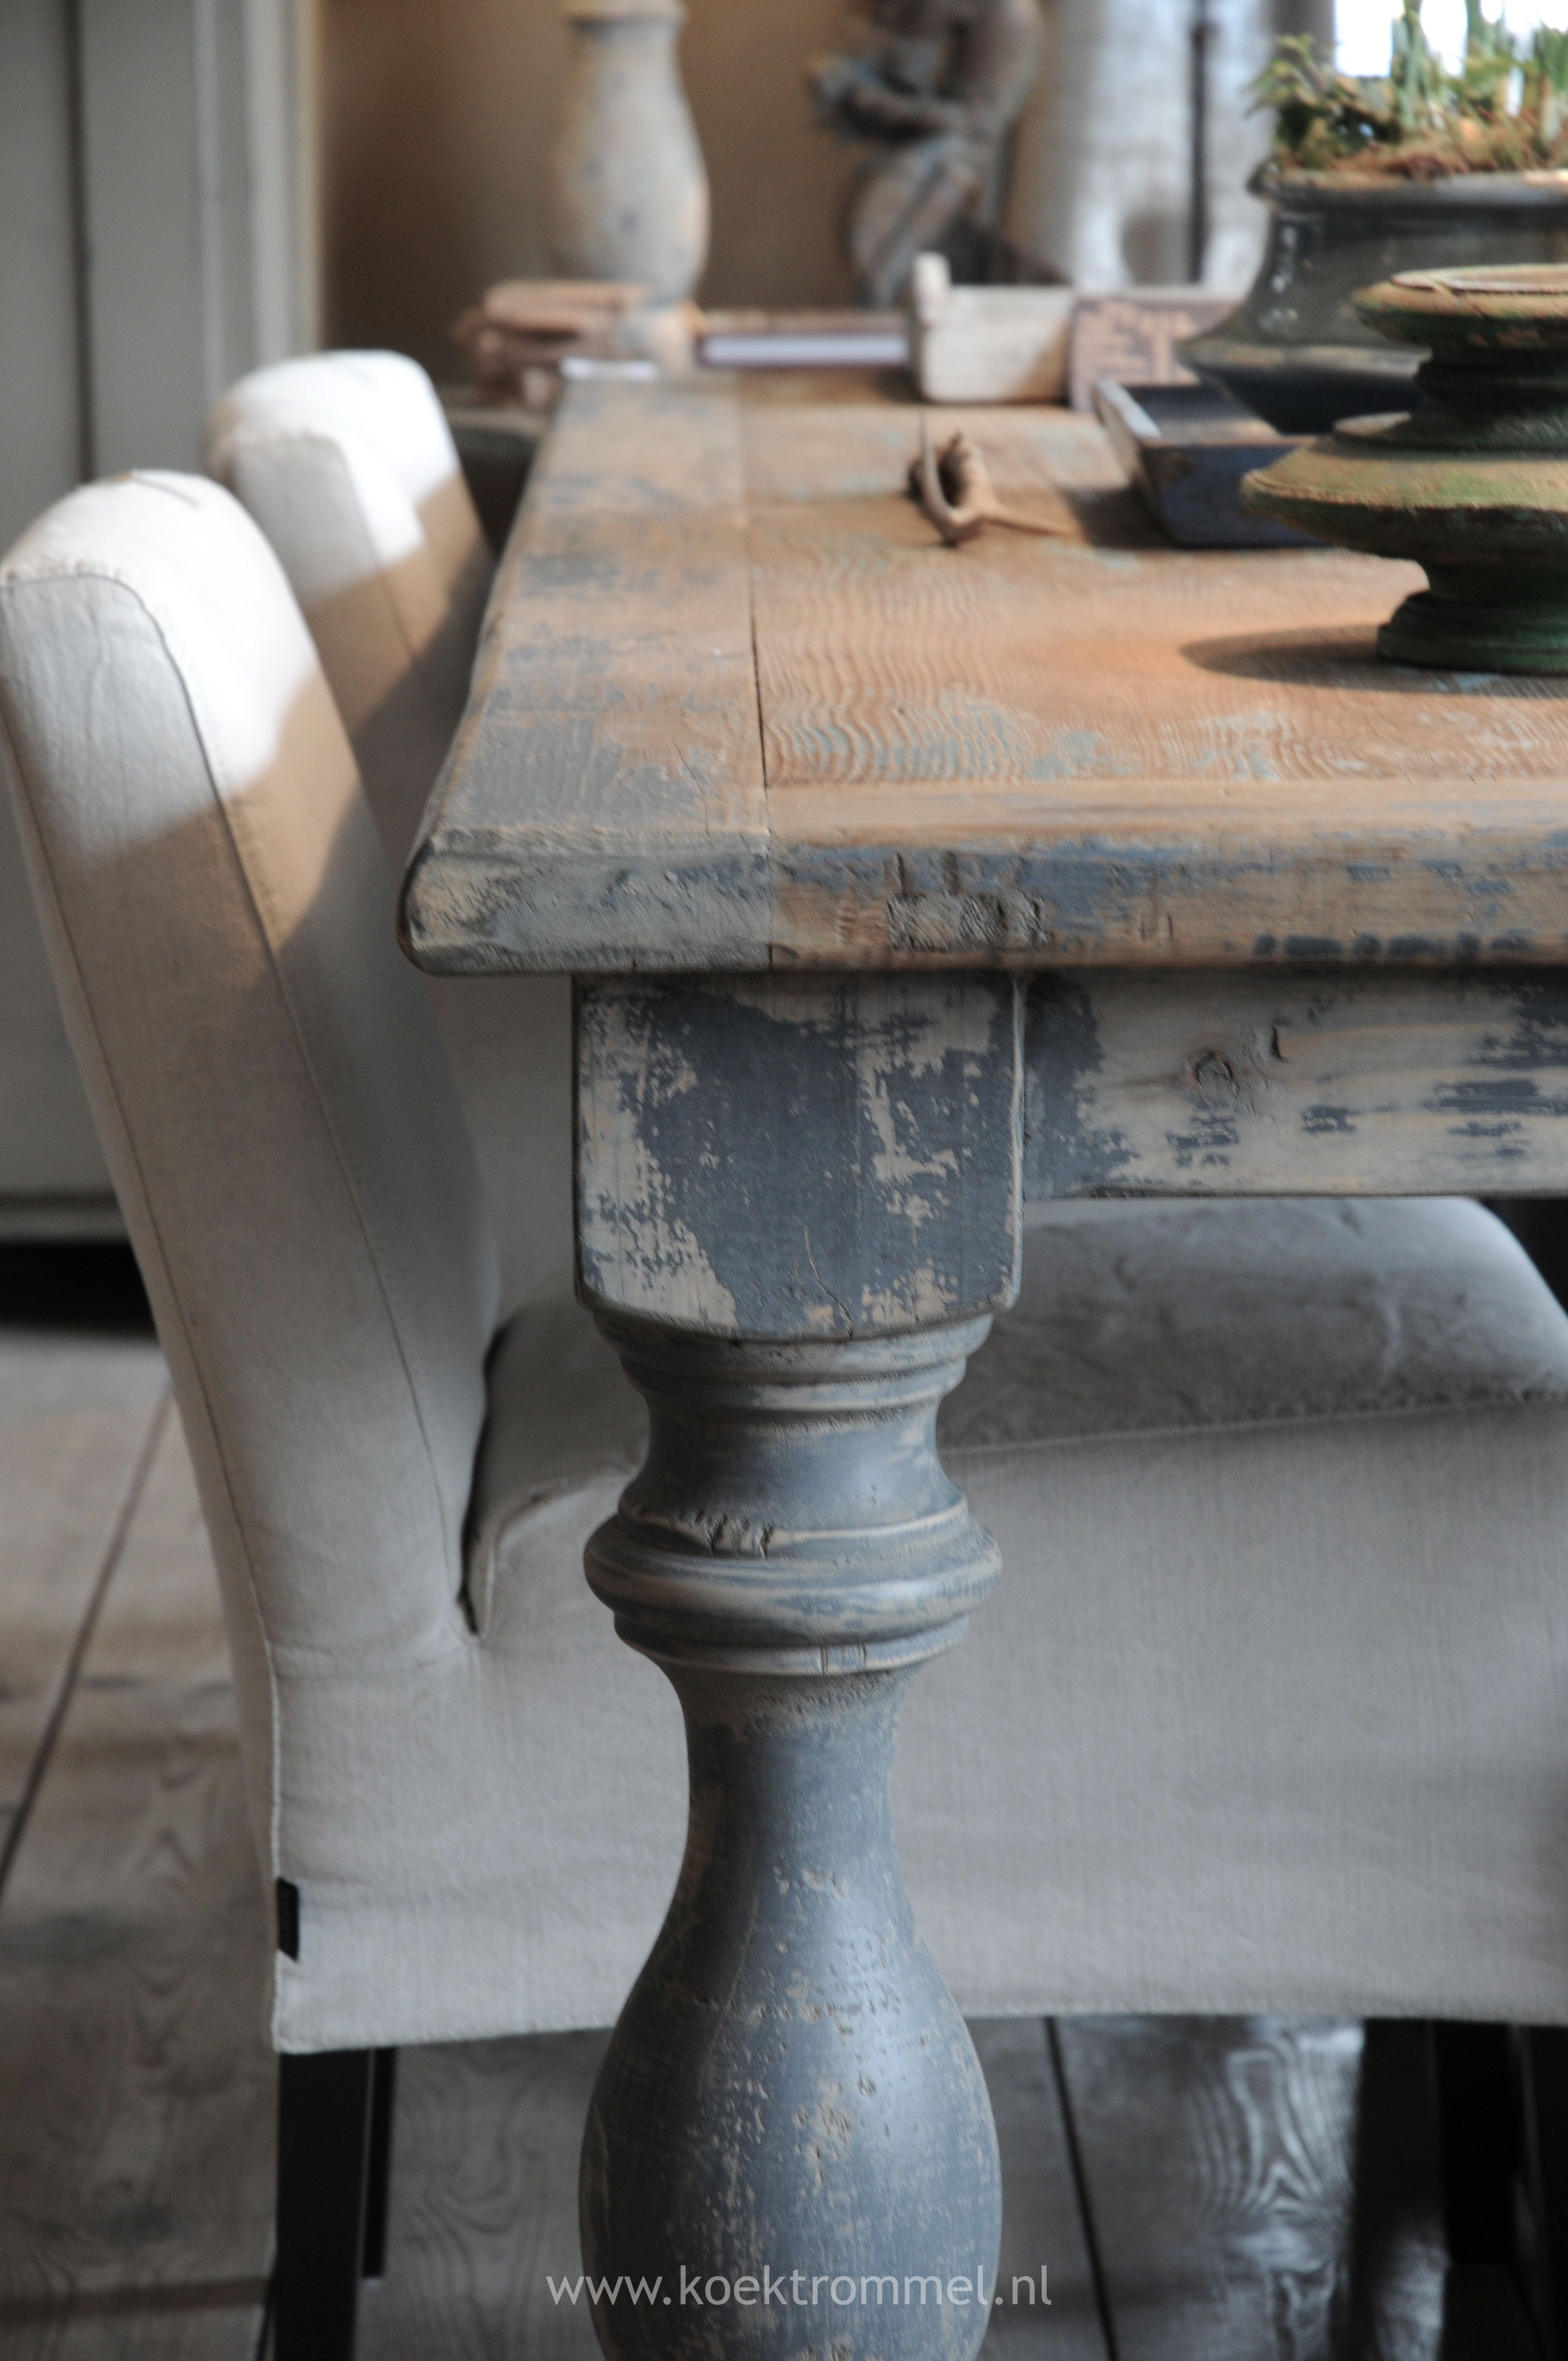 Furniture This Weathered Dining Table Has A Unique Patina And Elegance That No New Item Could Attain For Many Deca Decor Rustic Dining Table Painted Furniture